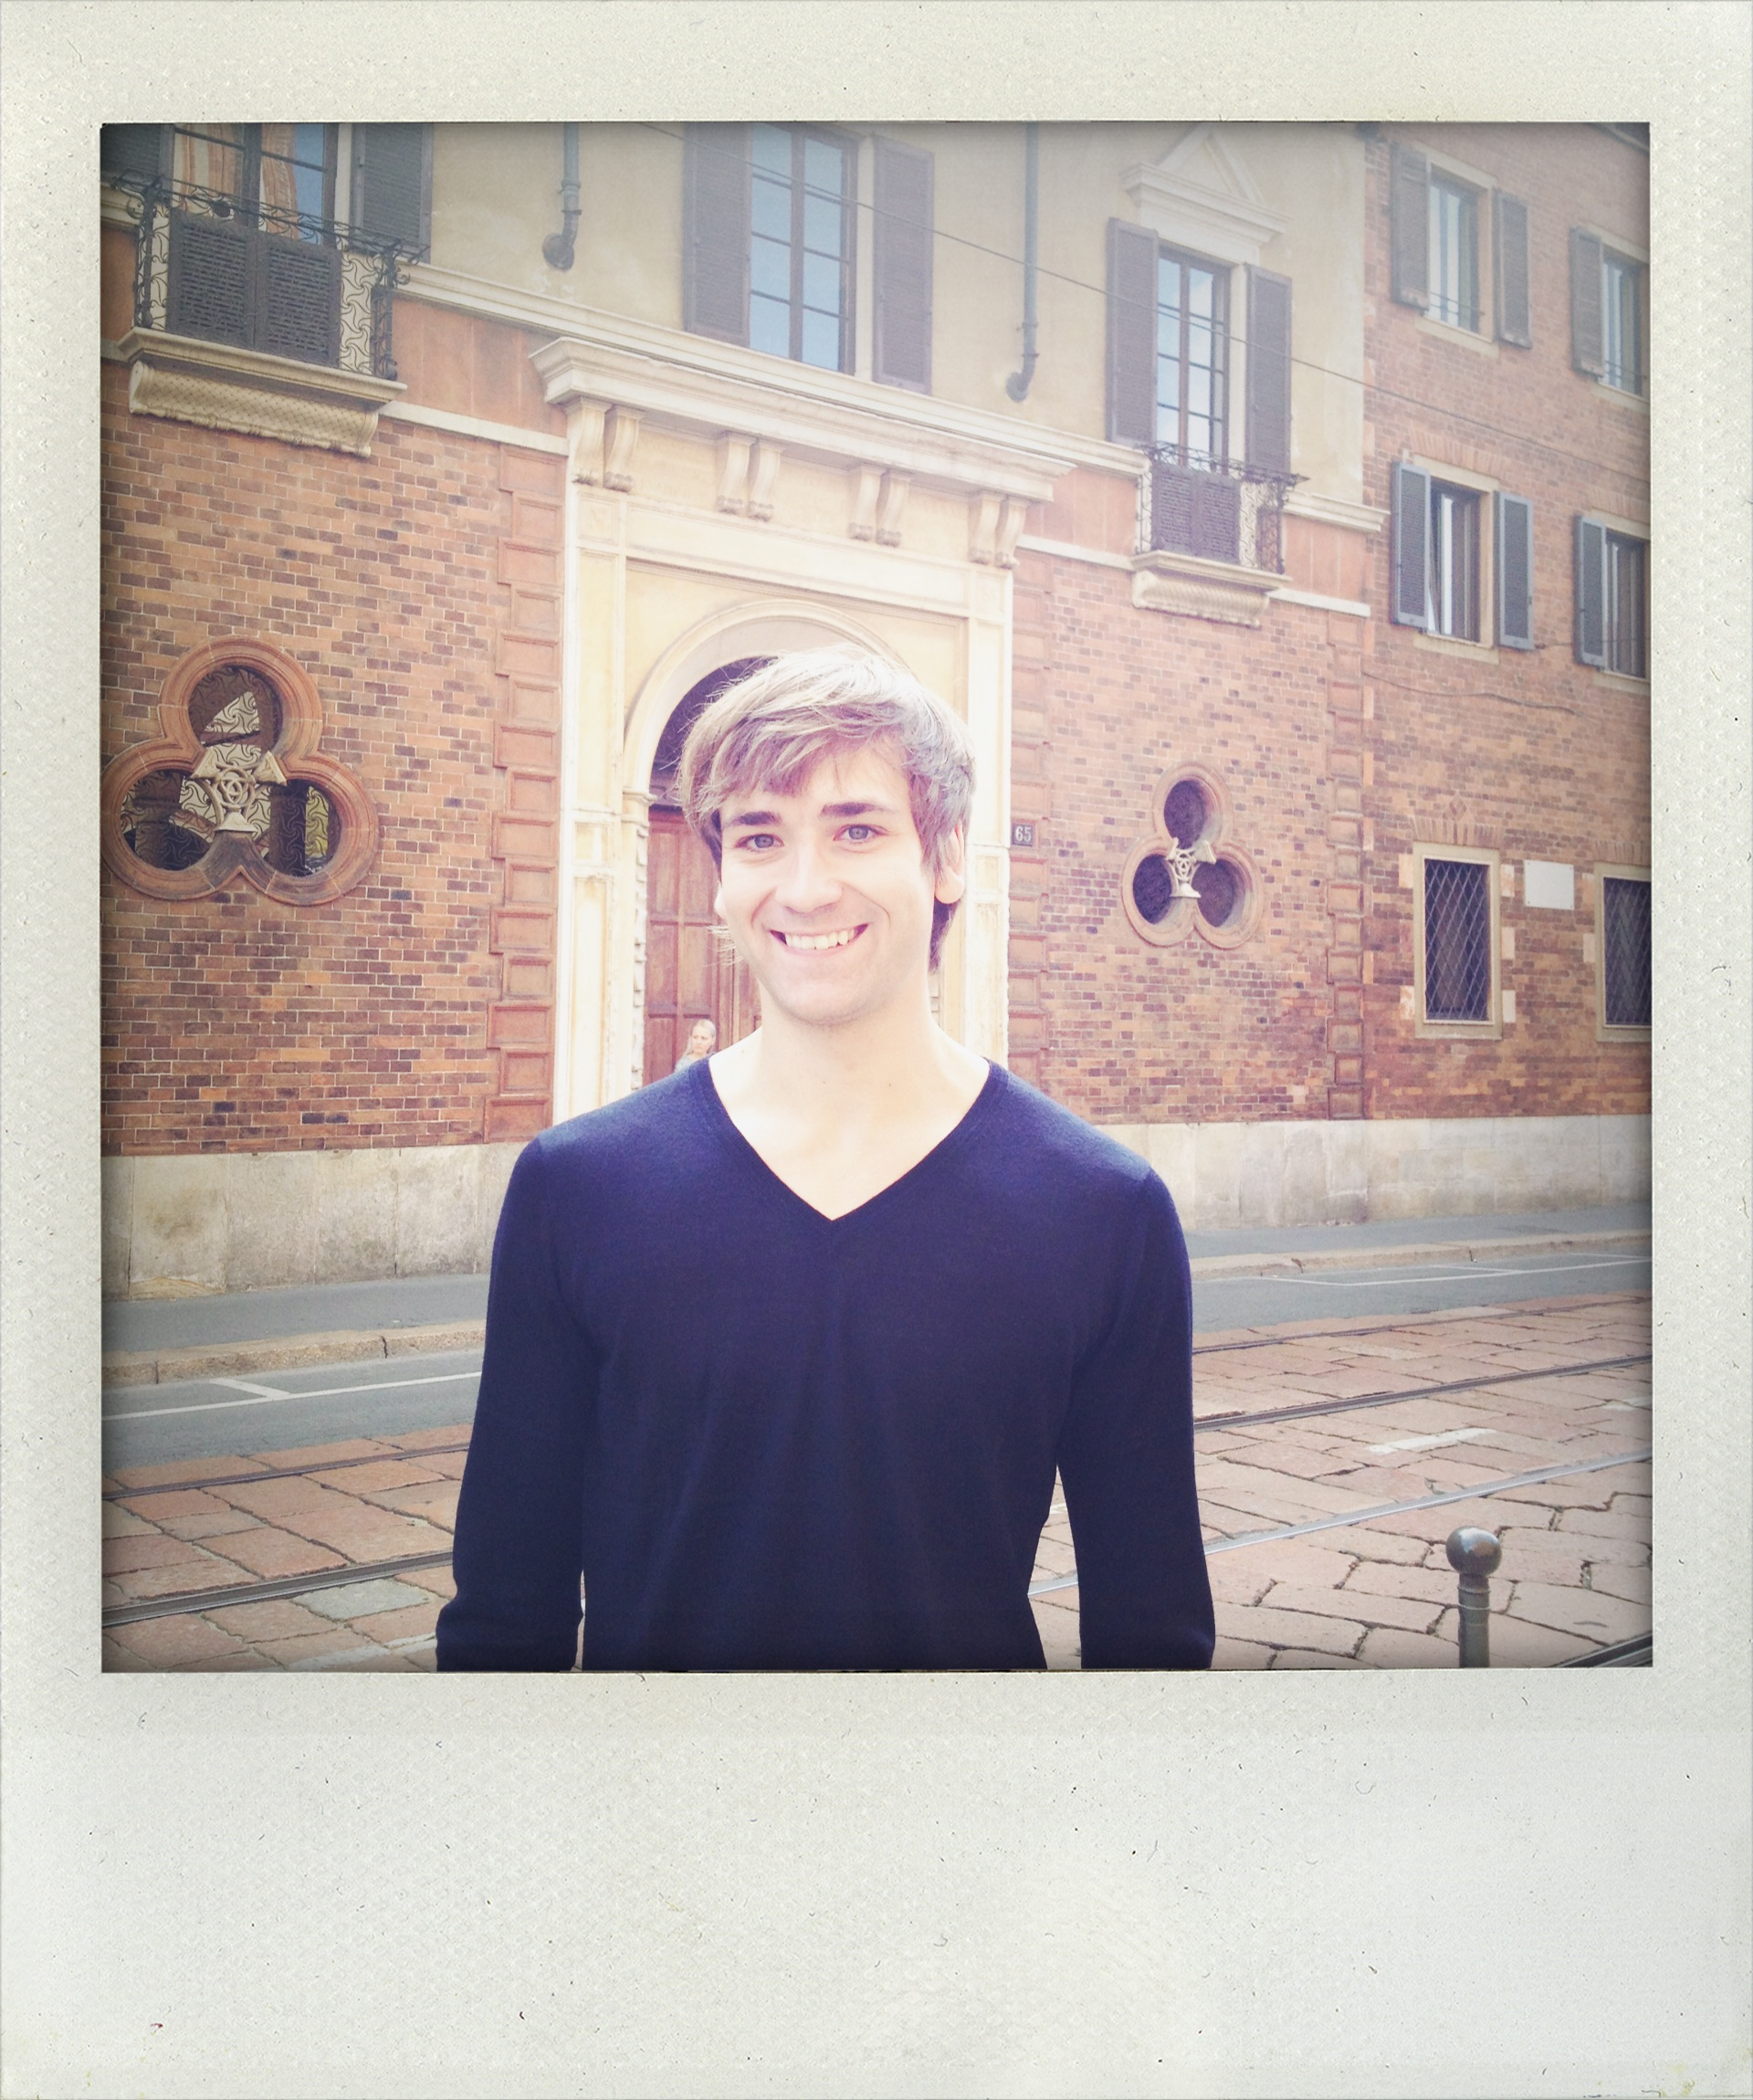 In front of Da Vinci's house in Milan